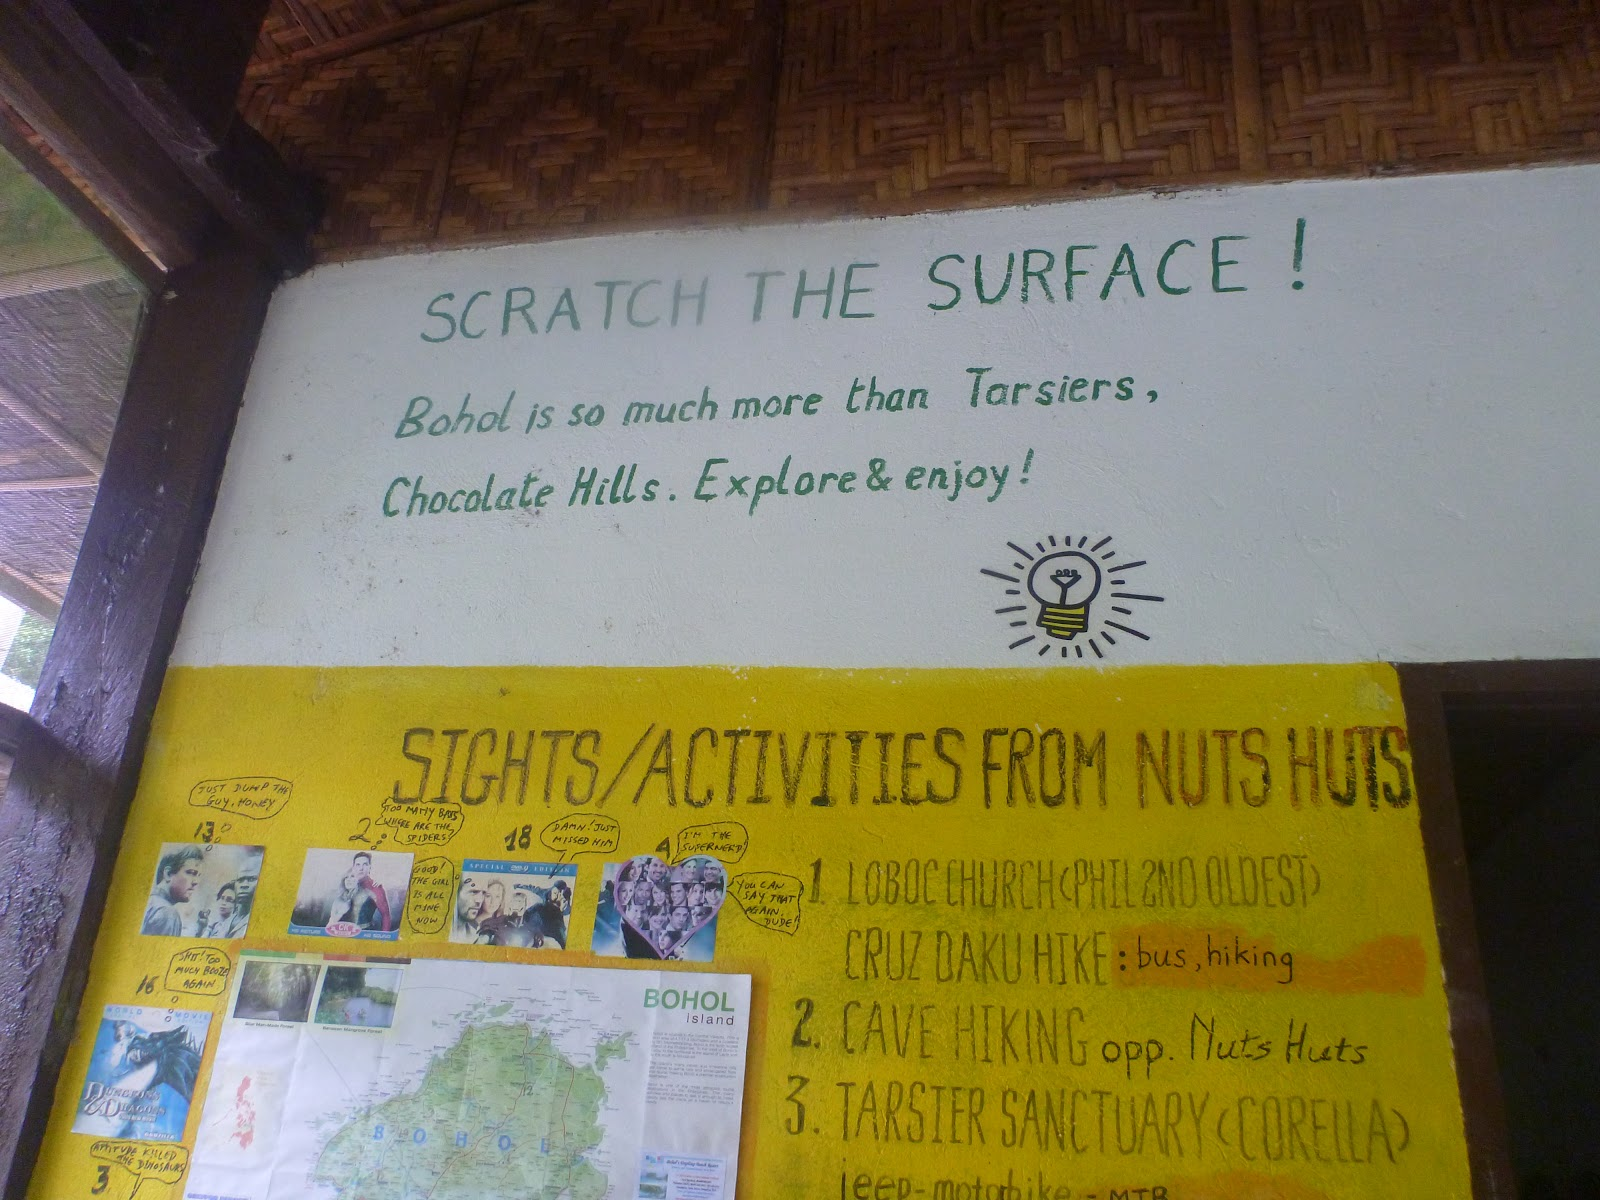 SCRATCH THE SURFACE! Bohol is so much more than Tarsiers, Chocolate Hills. Explore & enjoy!